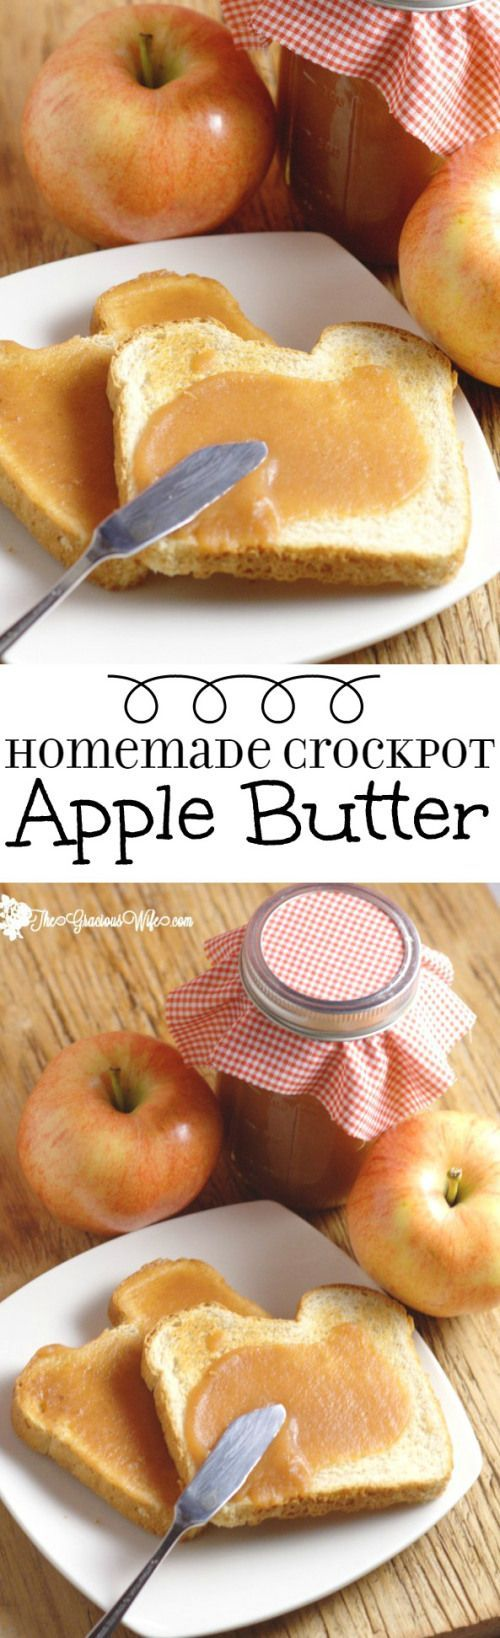 15+ Fall Apple Desserts and Treats | The Crafting Nook by Titicrafty